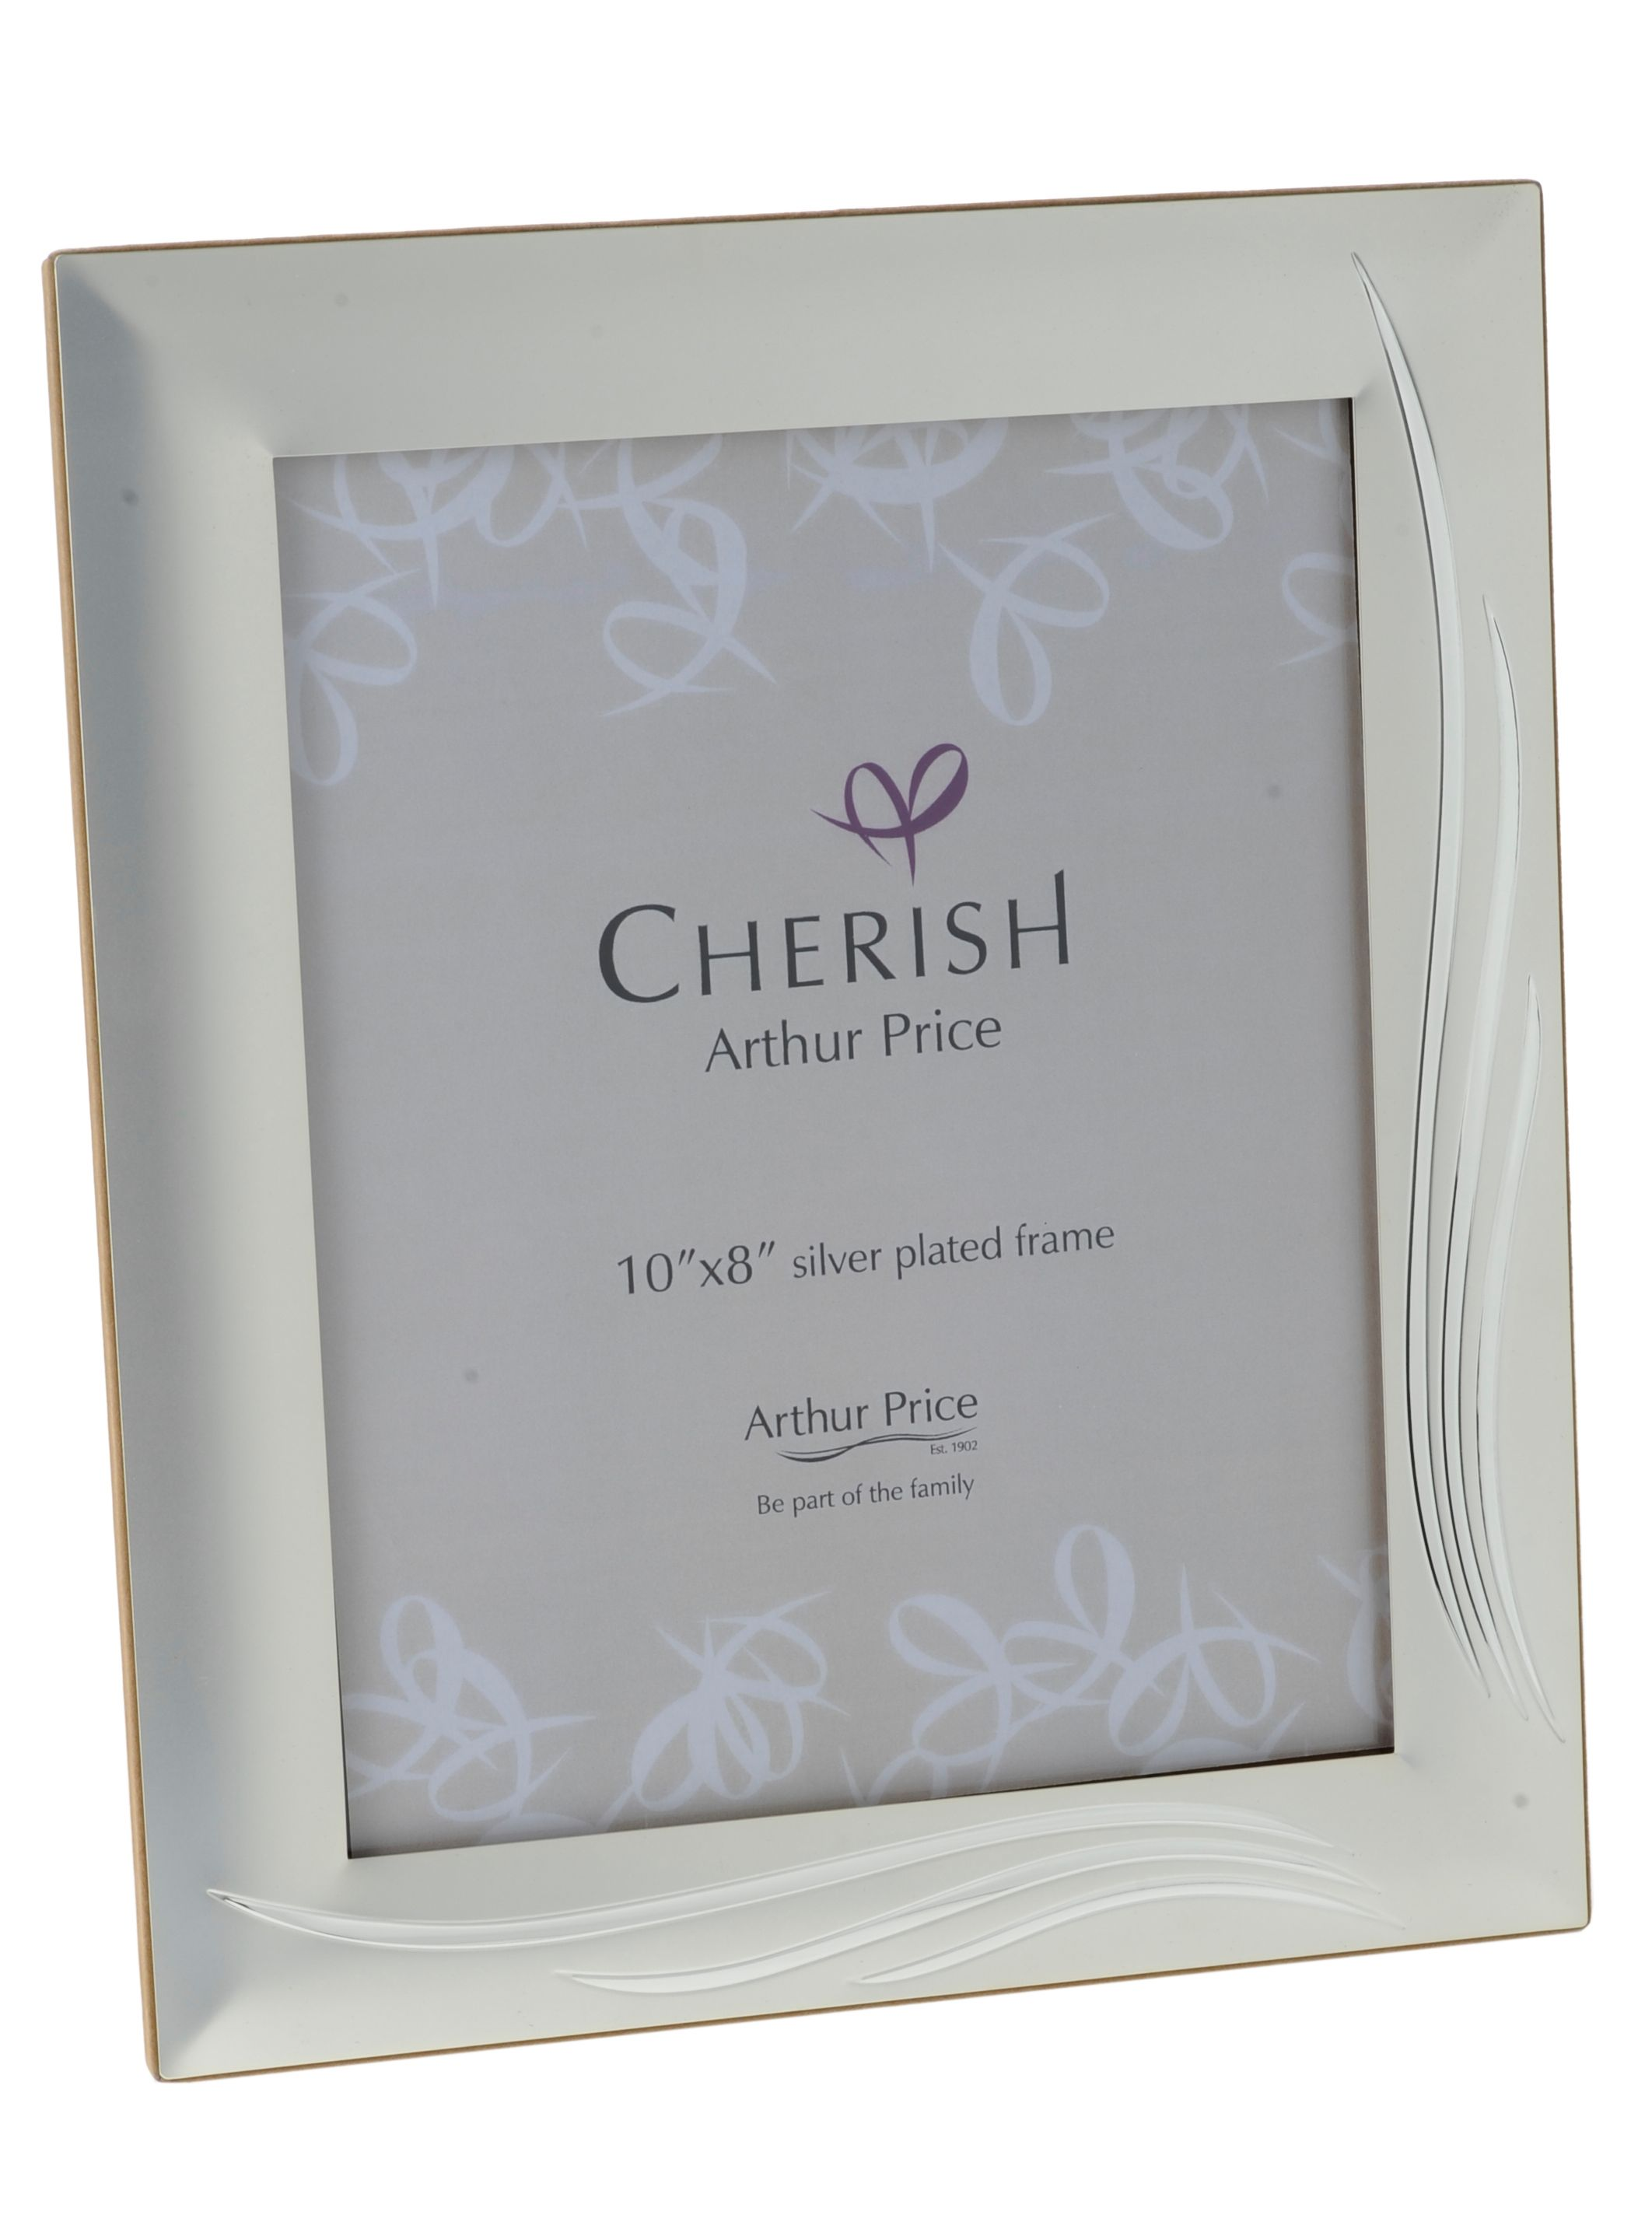 Silver plated 8 x 10 Weston photograph frame